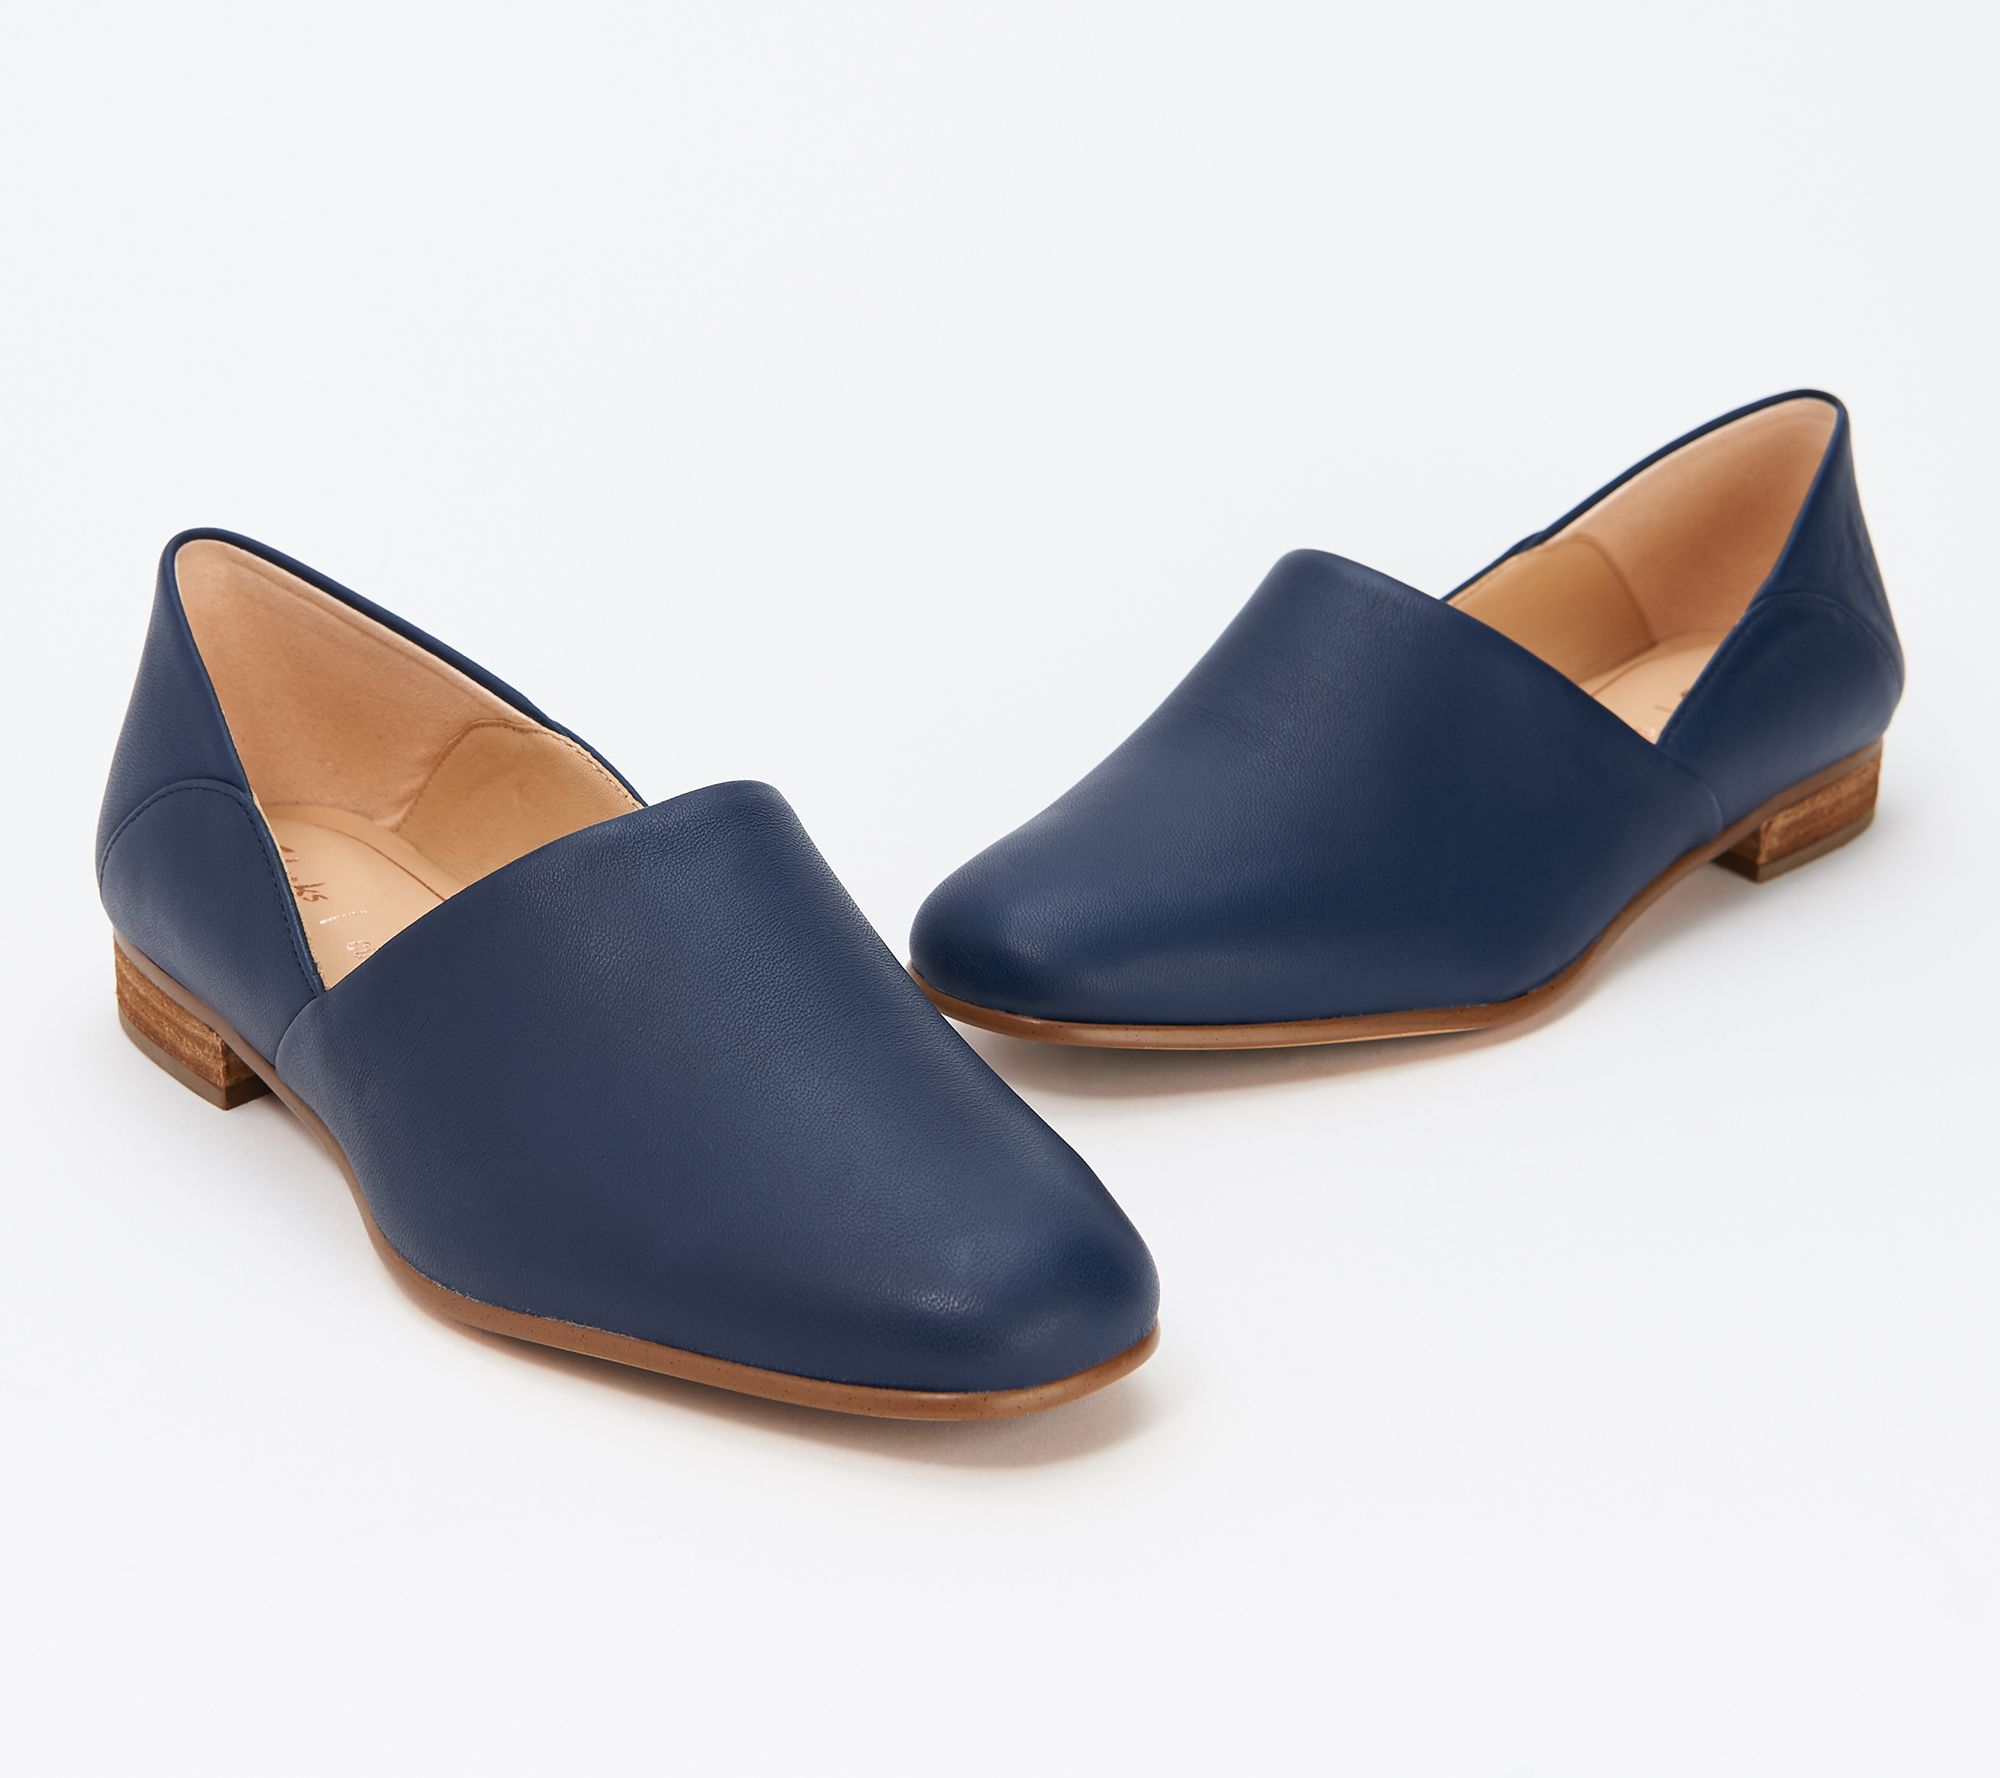 Alinear vamos a hacerlo sangre  Clarks Leather & Suede Slip-On Shoes - Pure Tone - QVC.com